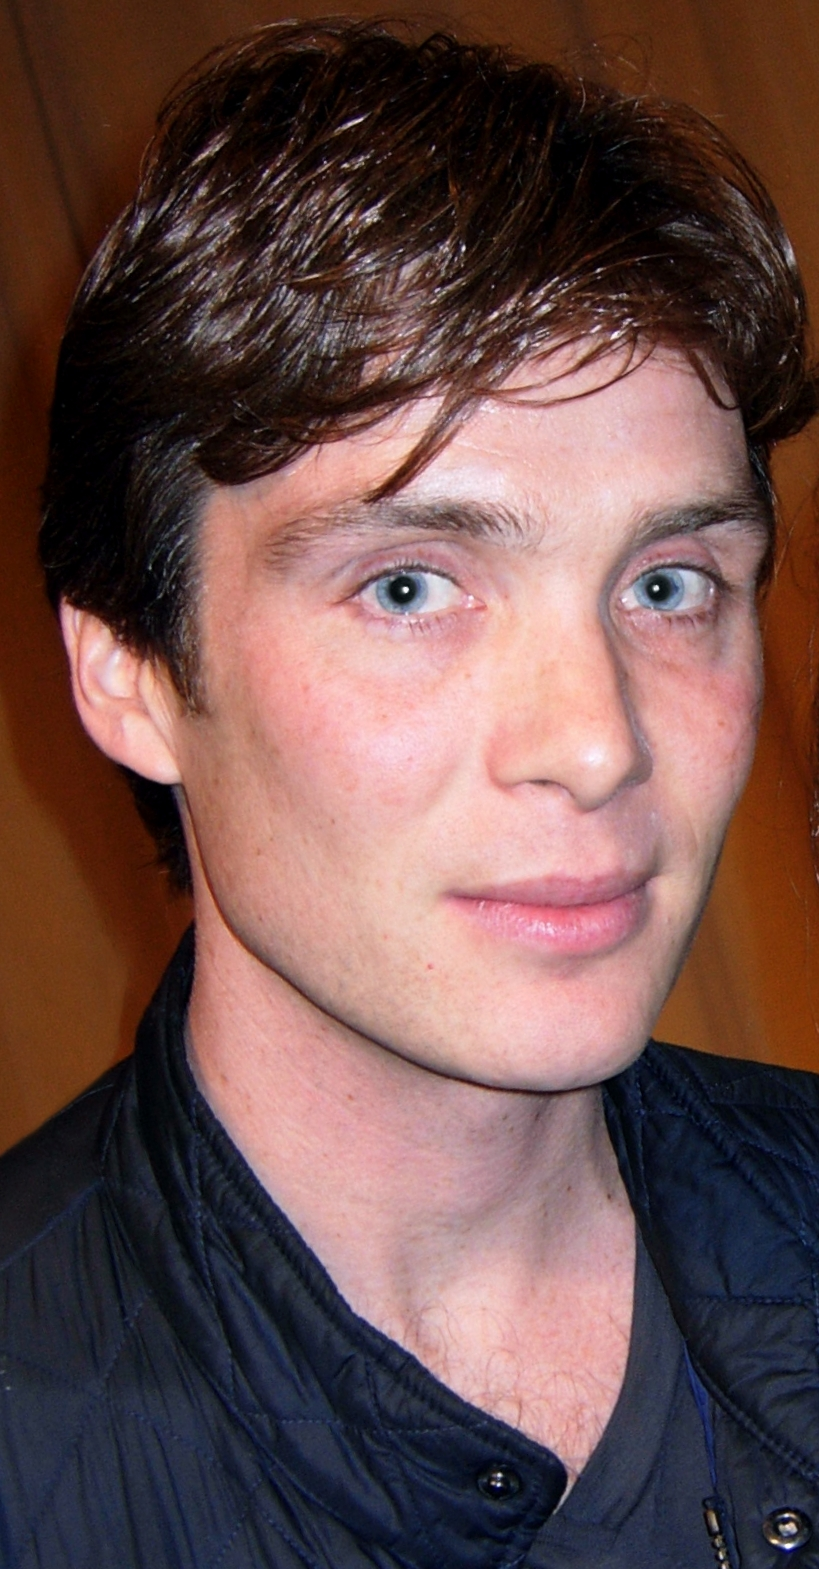 Cillian Murphy Movies Cillian Murphy 2010.jpg